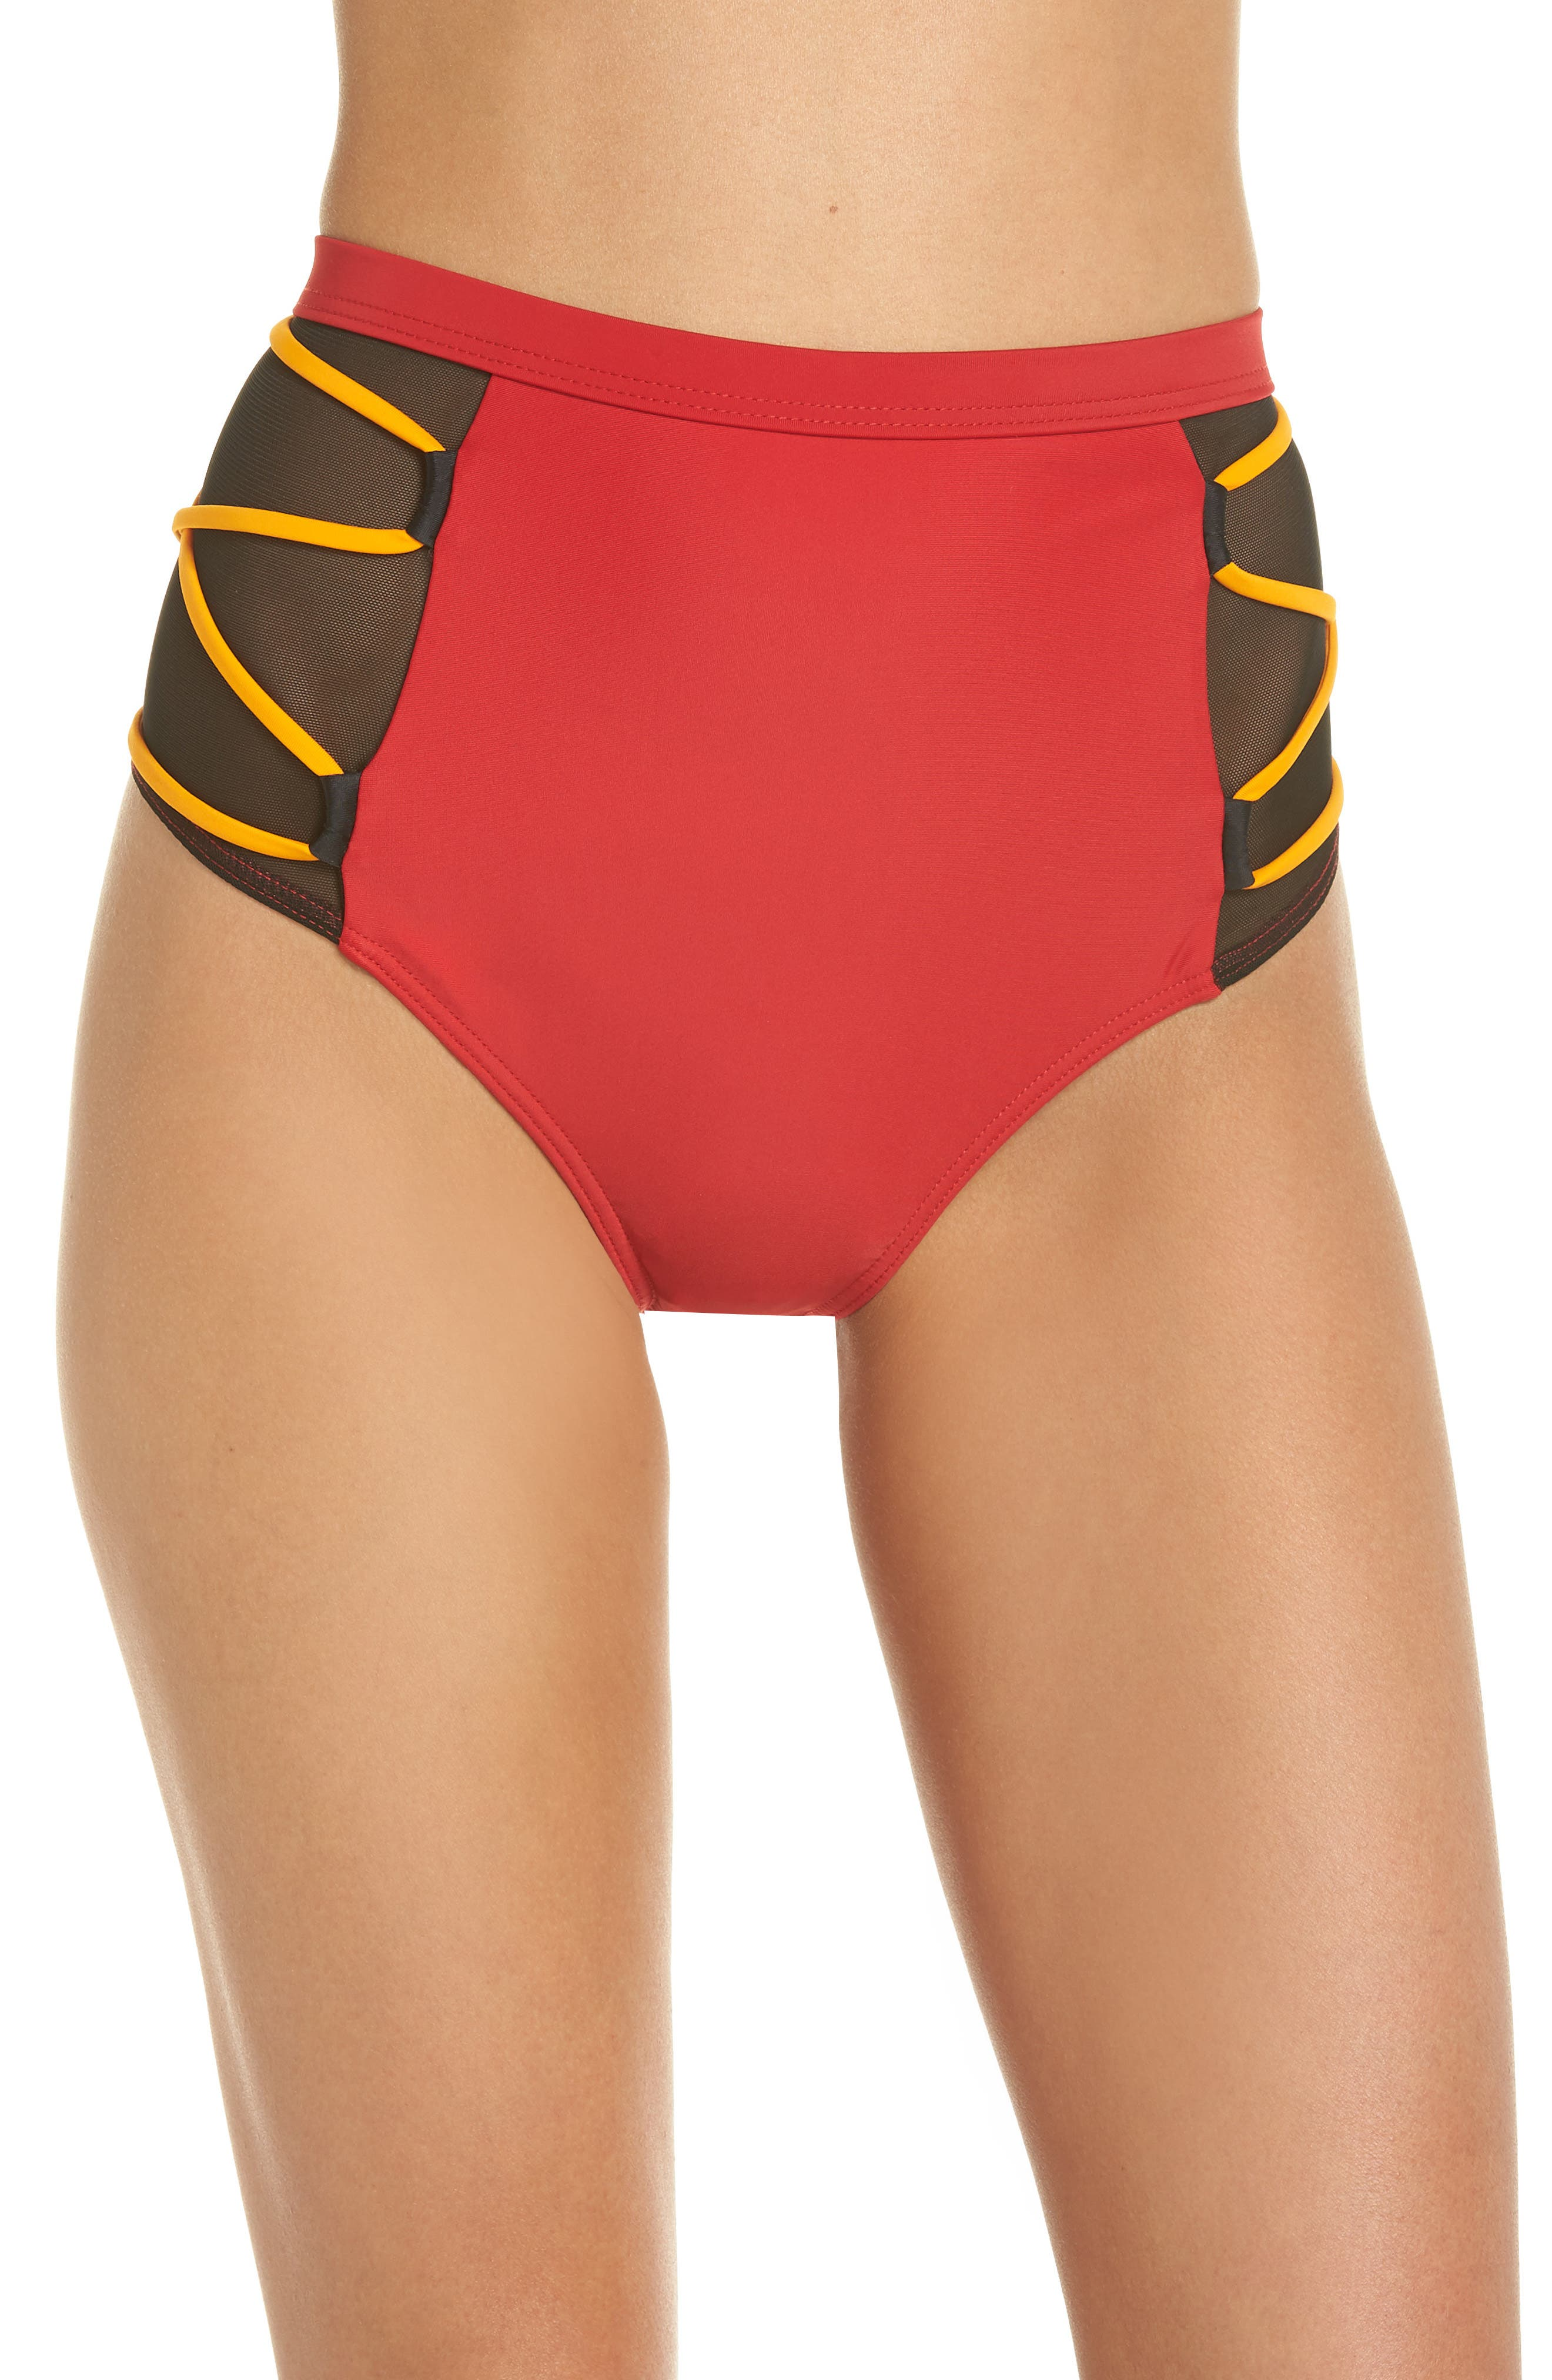 Launch Bikini Bottoms,                             Main thumbnail 1, color,